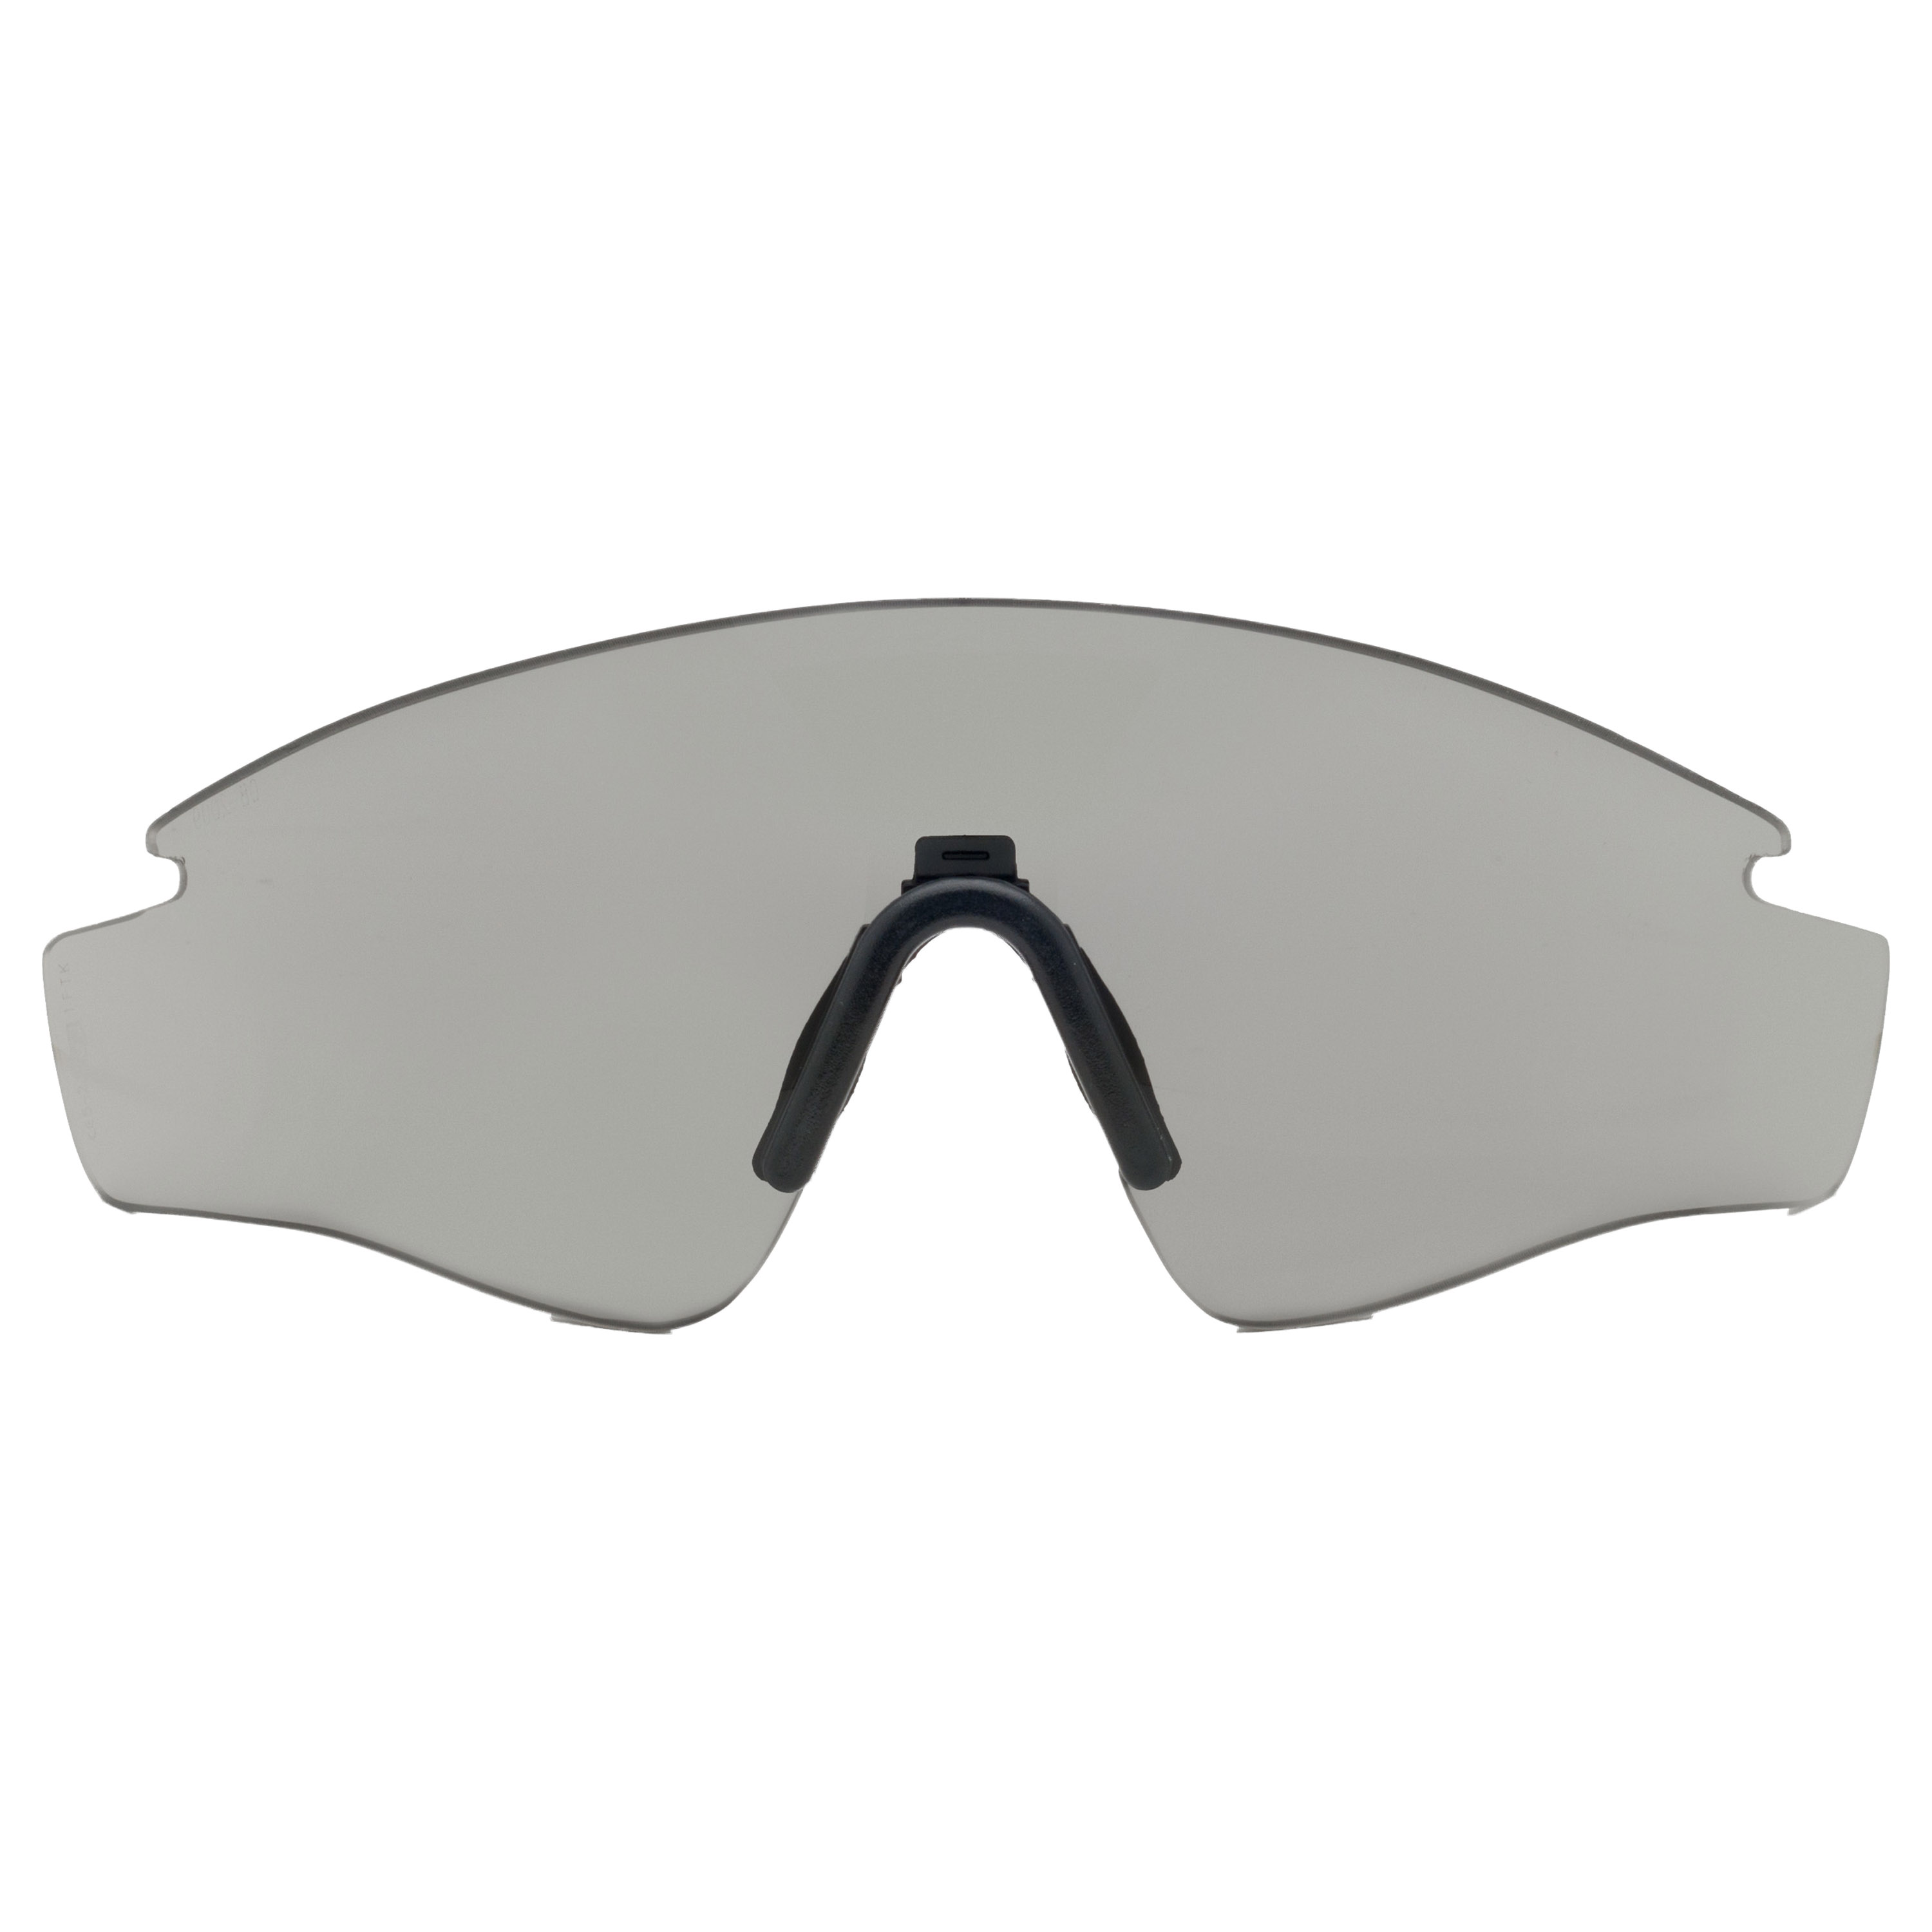 Revision Lunettes Sawfly Max-Wrap Essential Kit